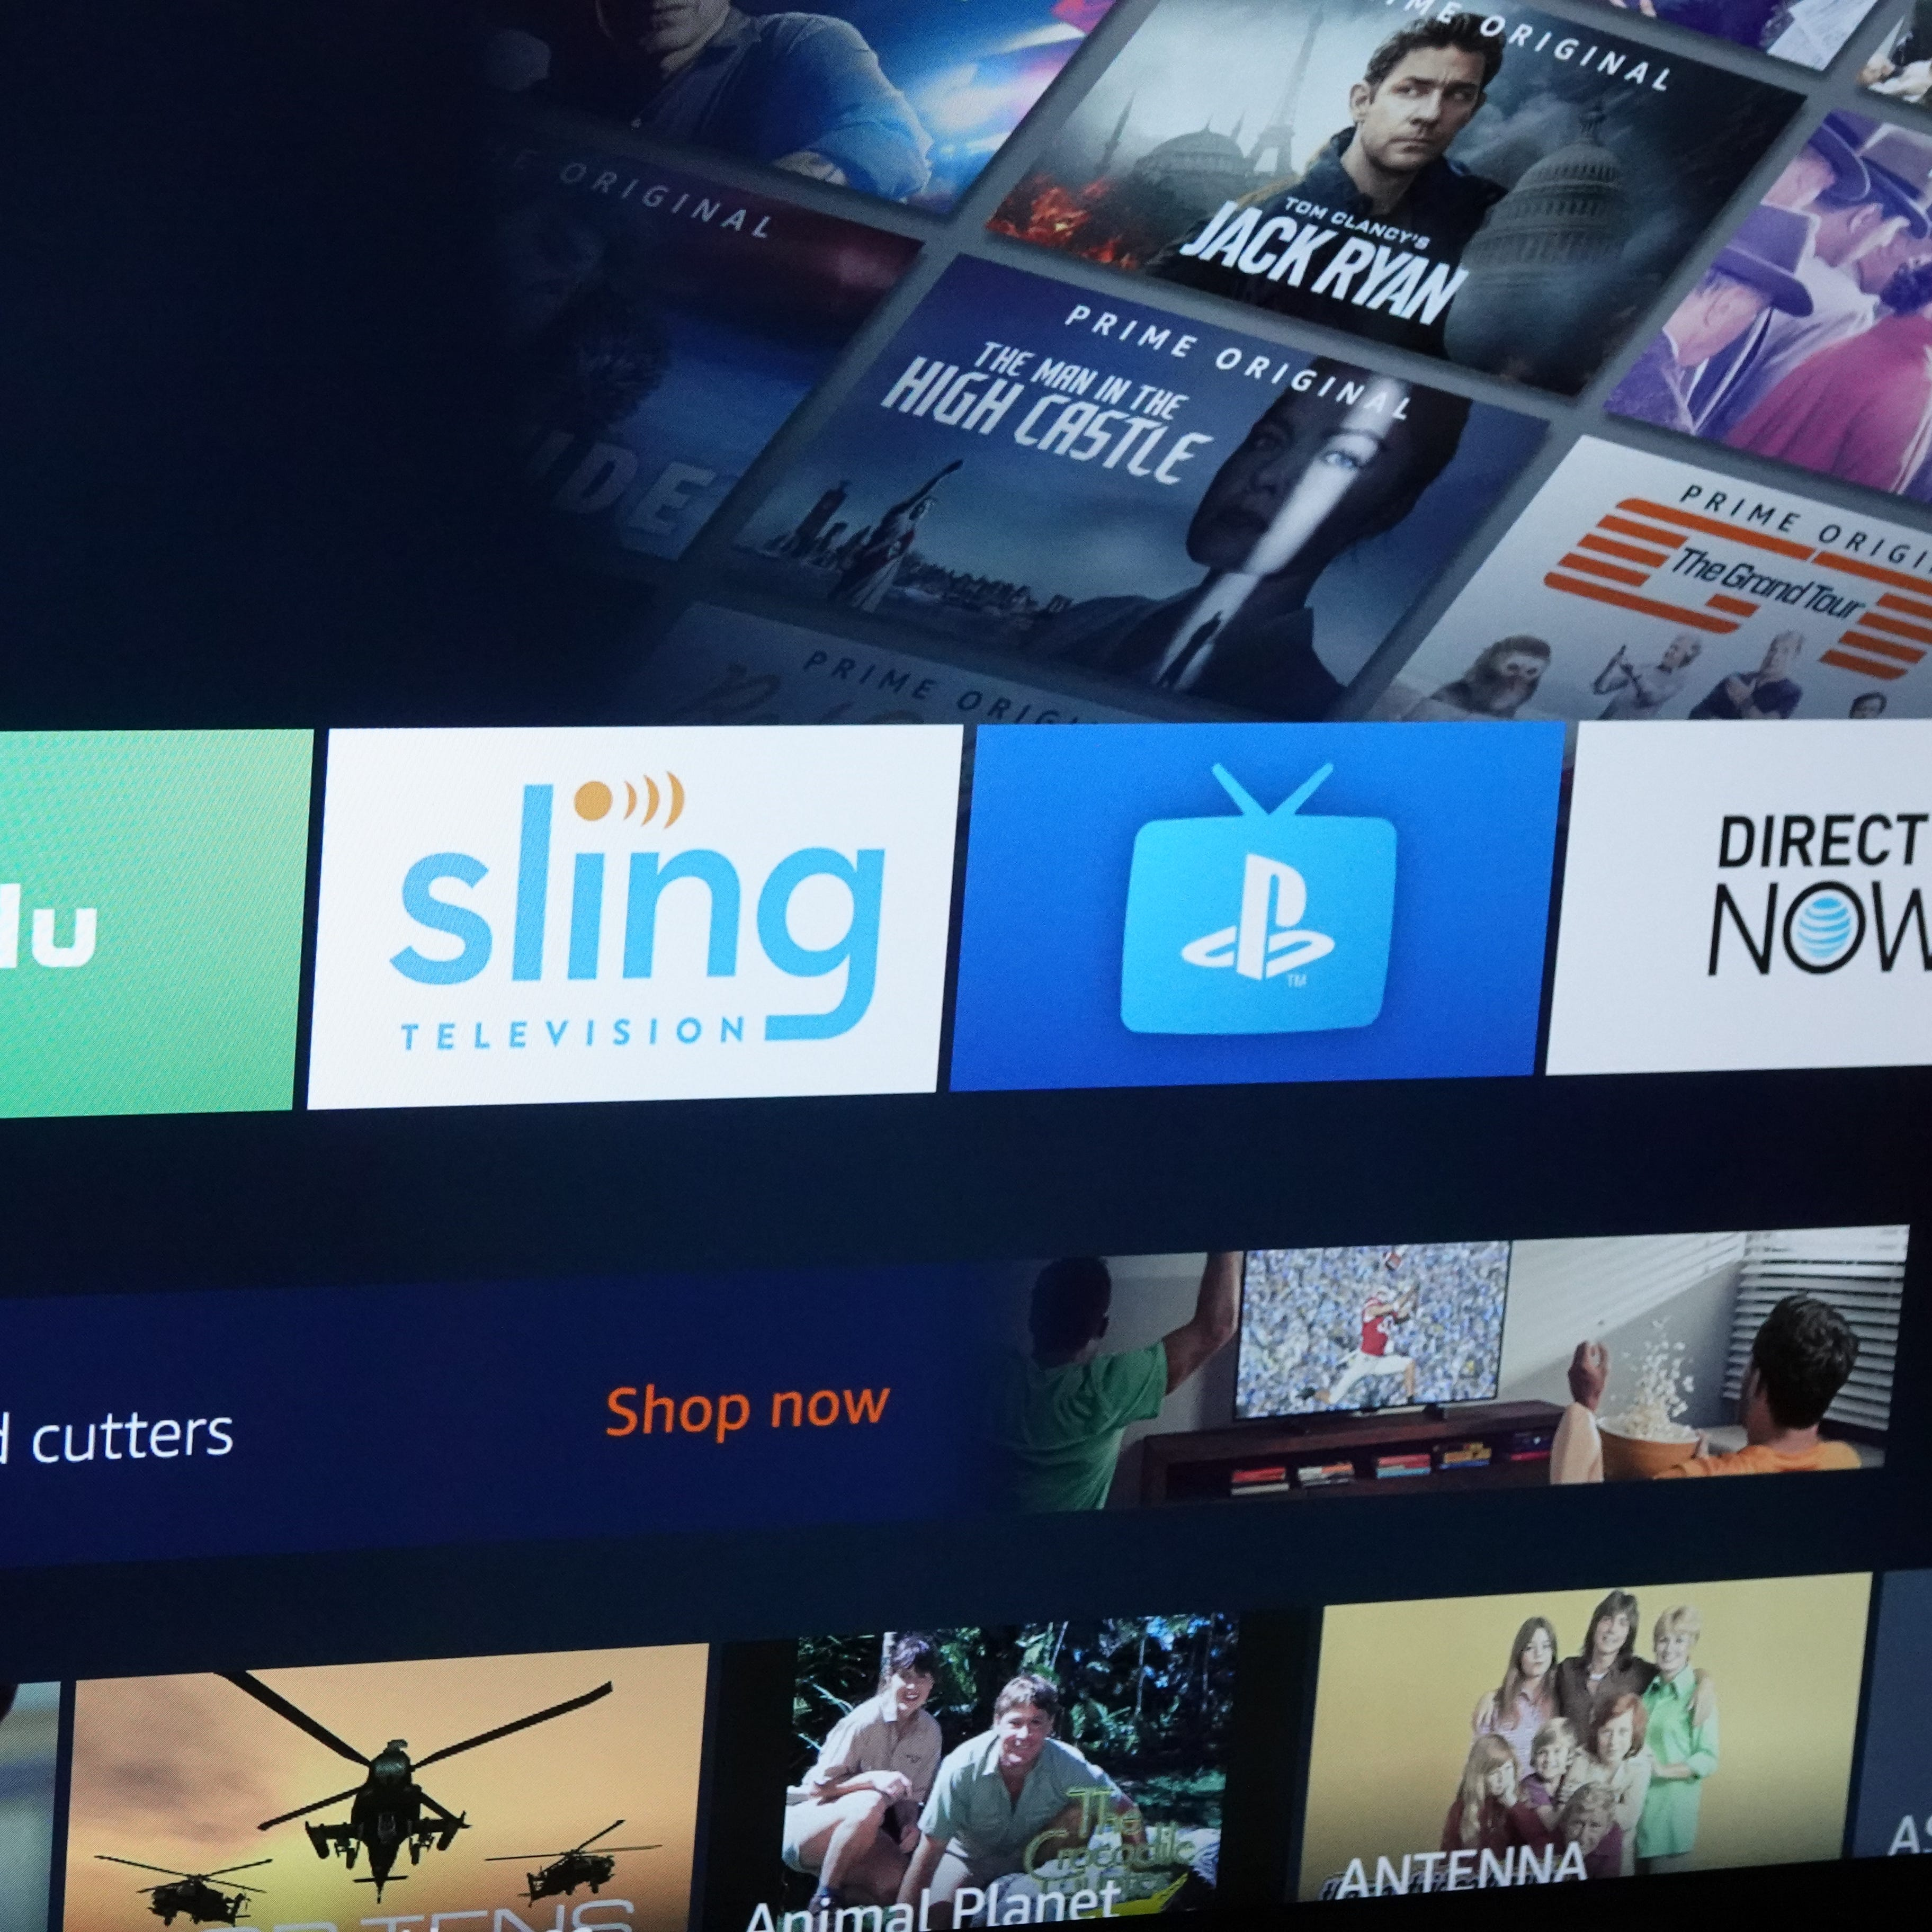 Hulu, Sling, PlayStation Vue and DirecTV Now logos.